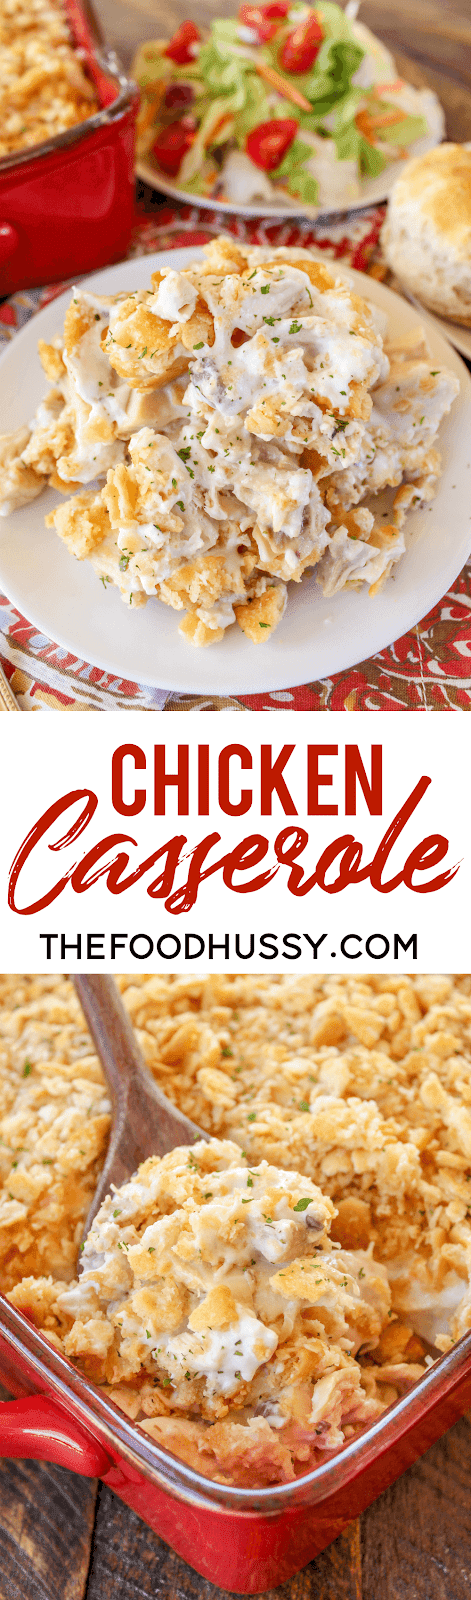 Chicken Casserole - this recipe only has 5 ingredients and is ready in just 30 minutes! It's a favorite for my family and girls night!